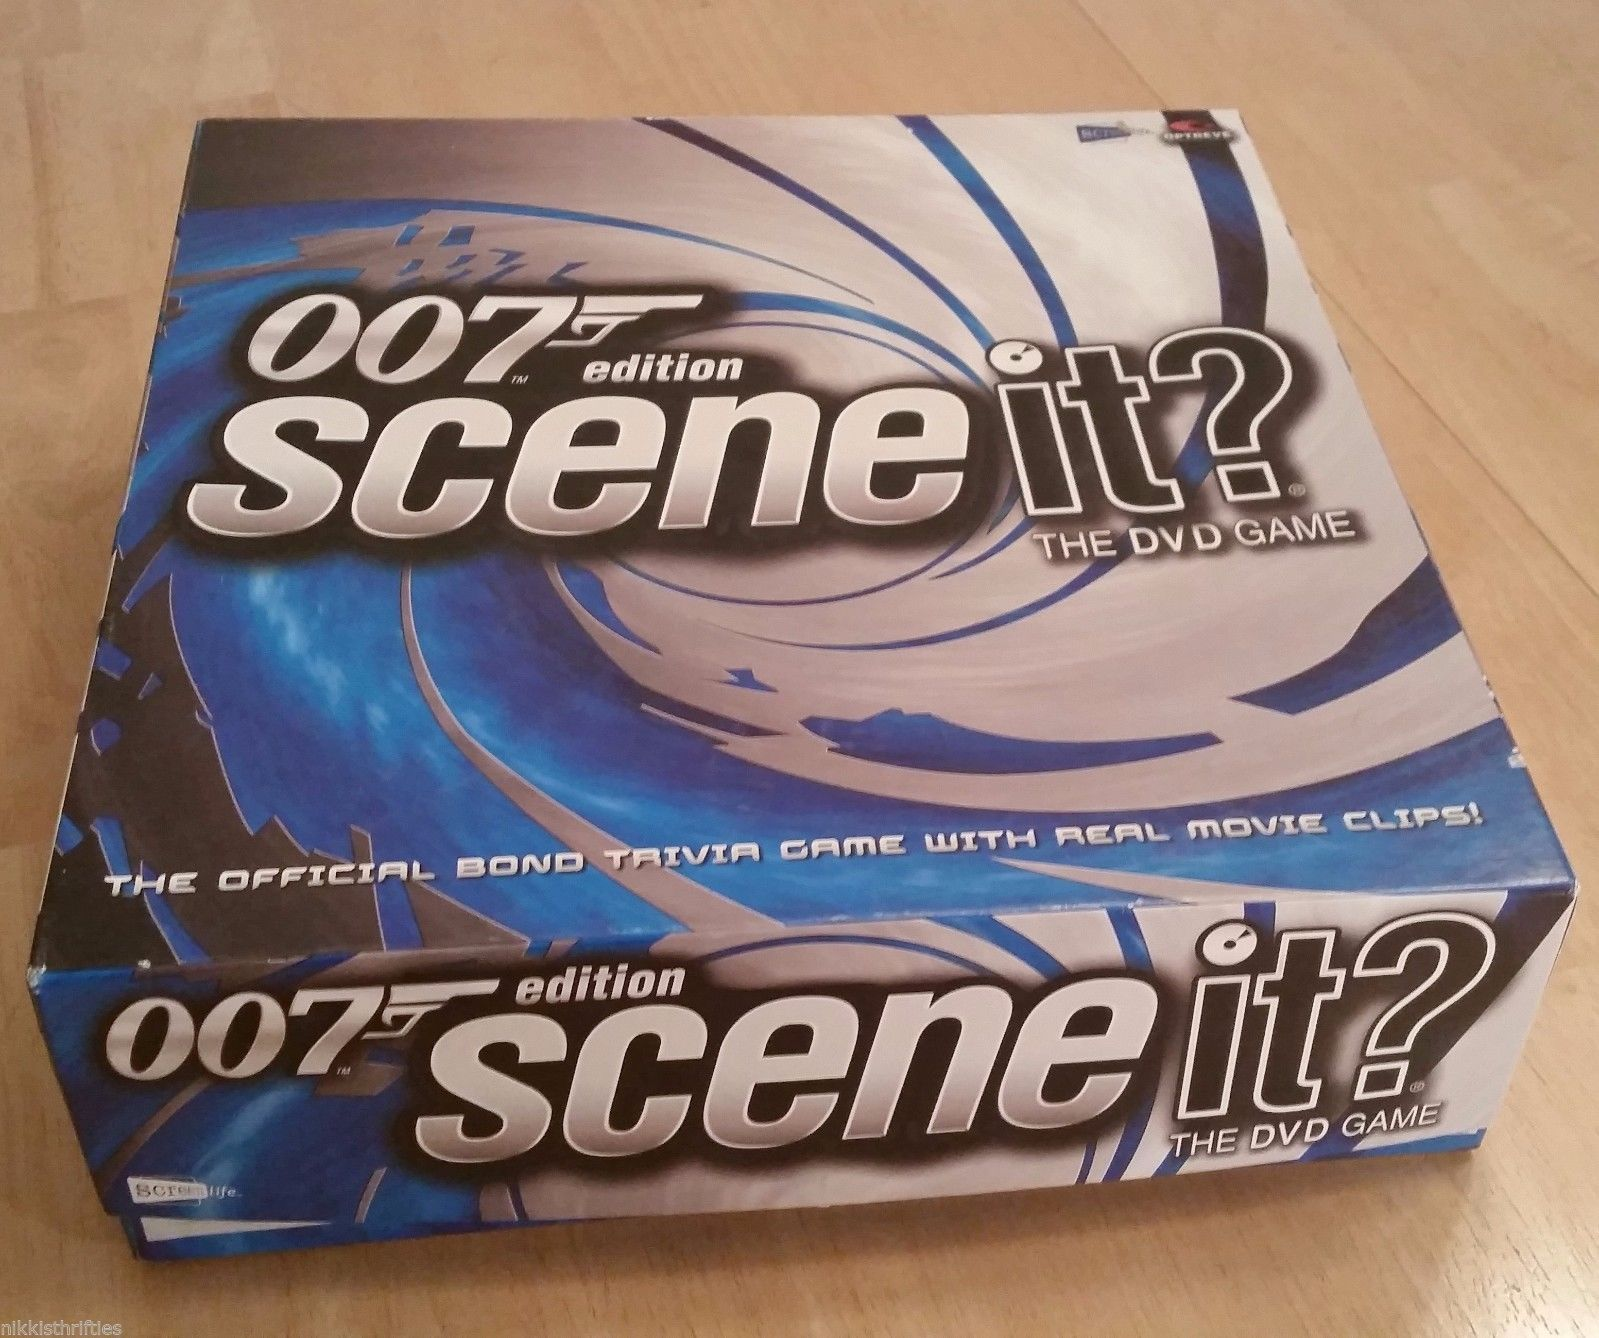 Primary image for 007 Edition Scene It? DVD Game James Bond Trivia Screen Life John Cleese